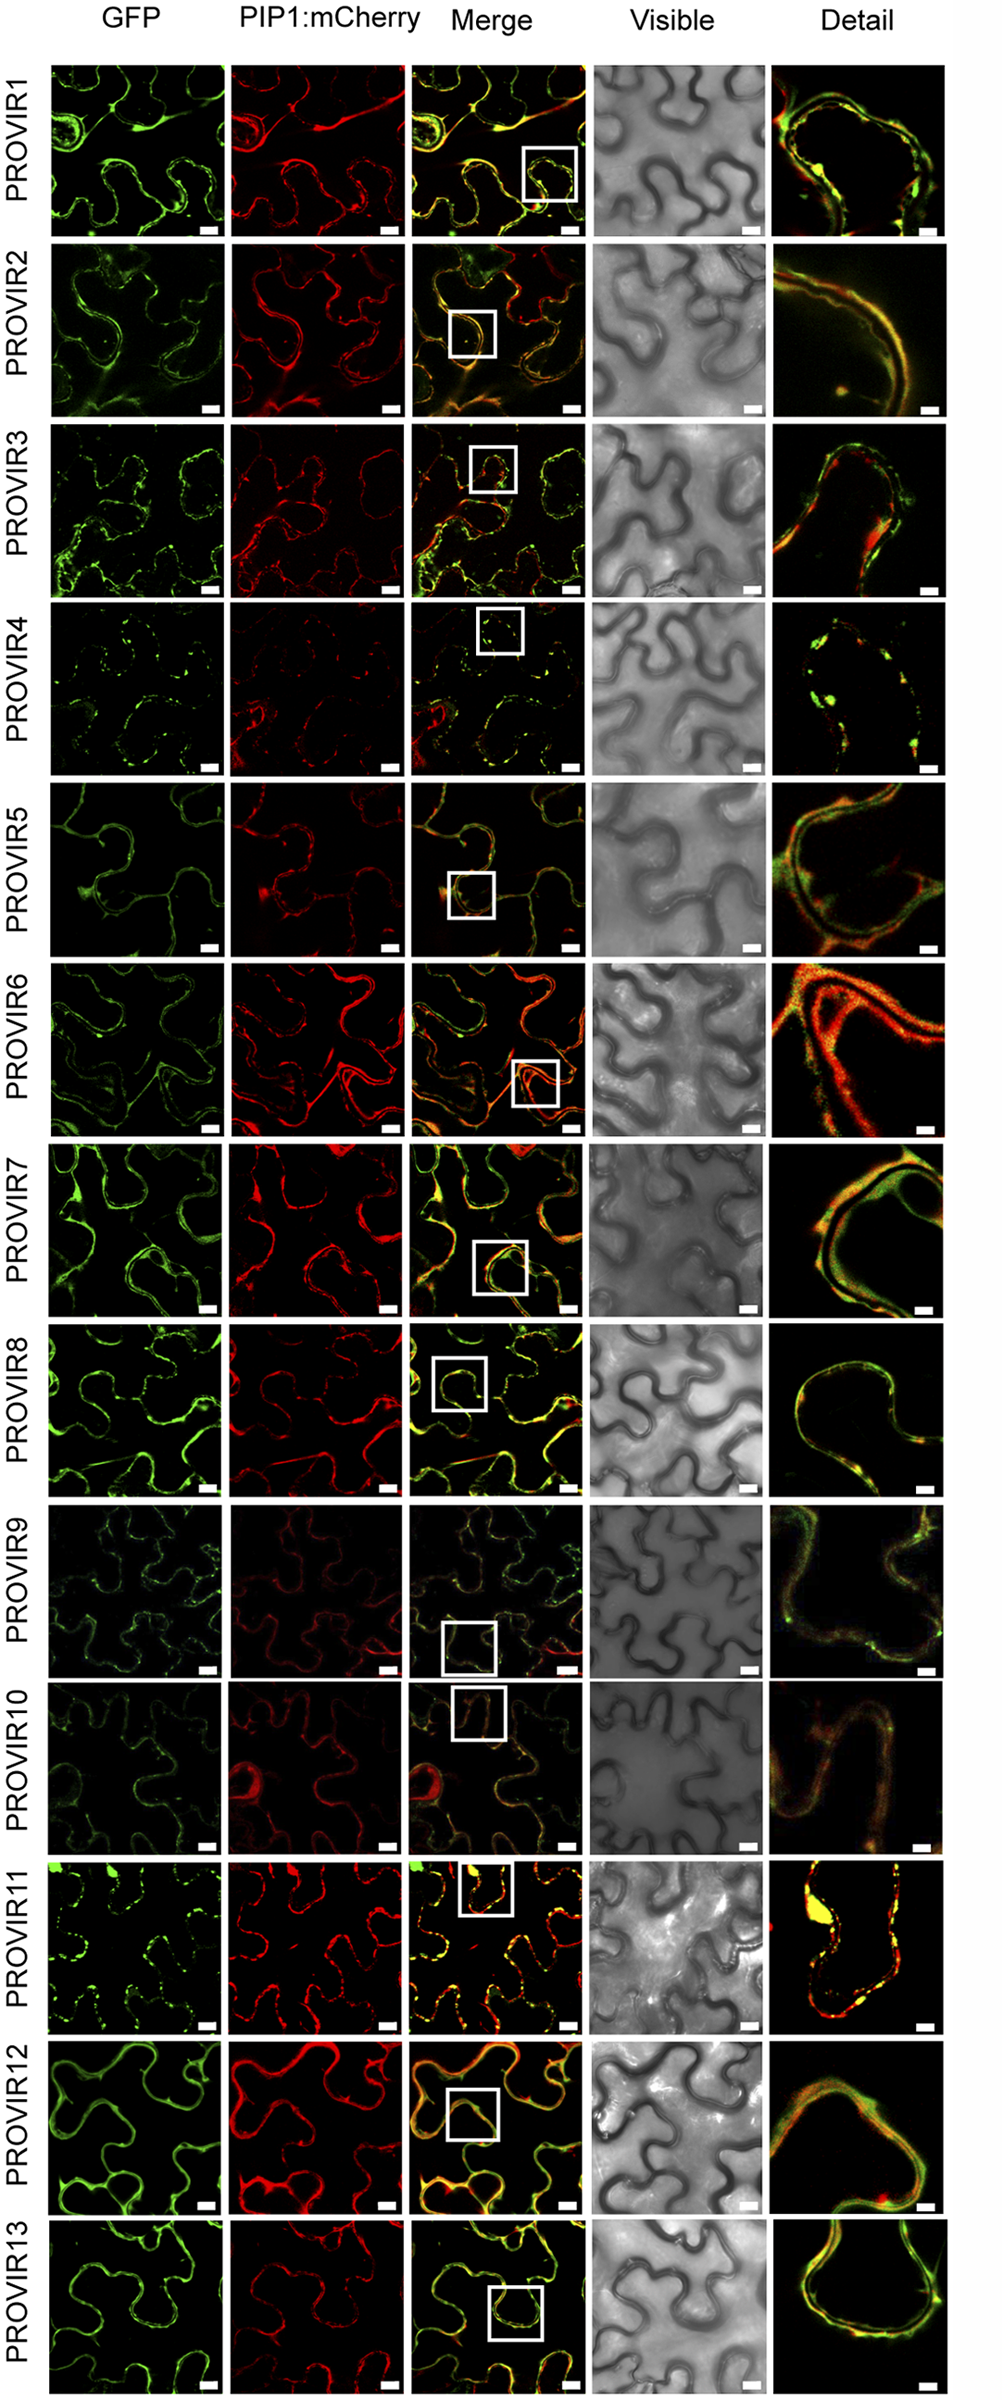 Localization of different PROVIR-GFP proteins in <i>N</i>. <i>benthamiana</i> leaves and protein co-localization with the plasma membrane marker protein PIP-mCherry by confocal microscopy.